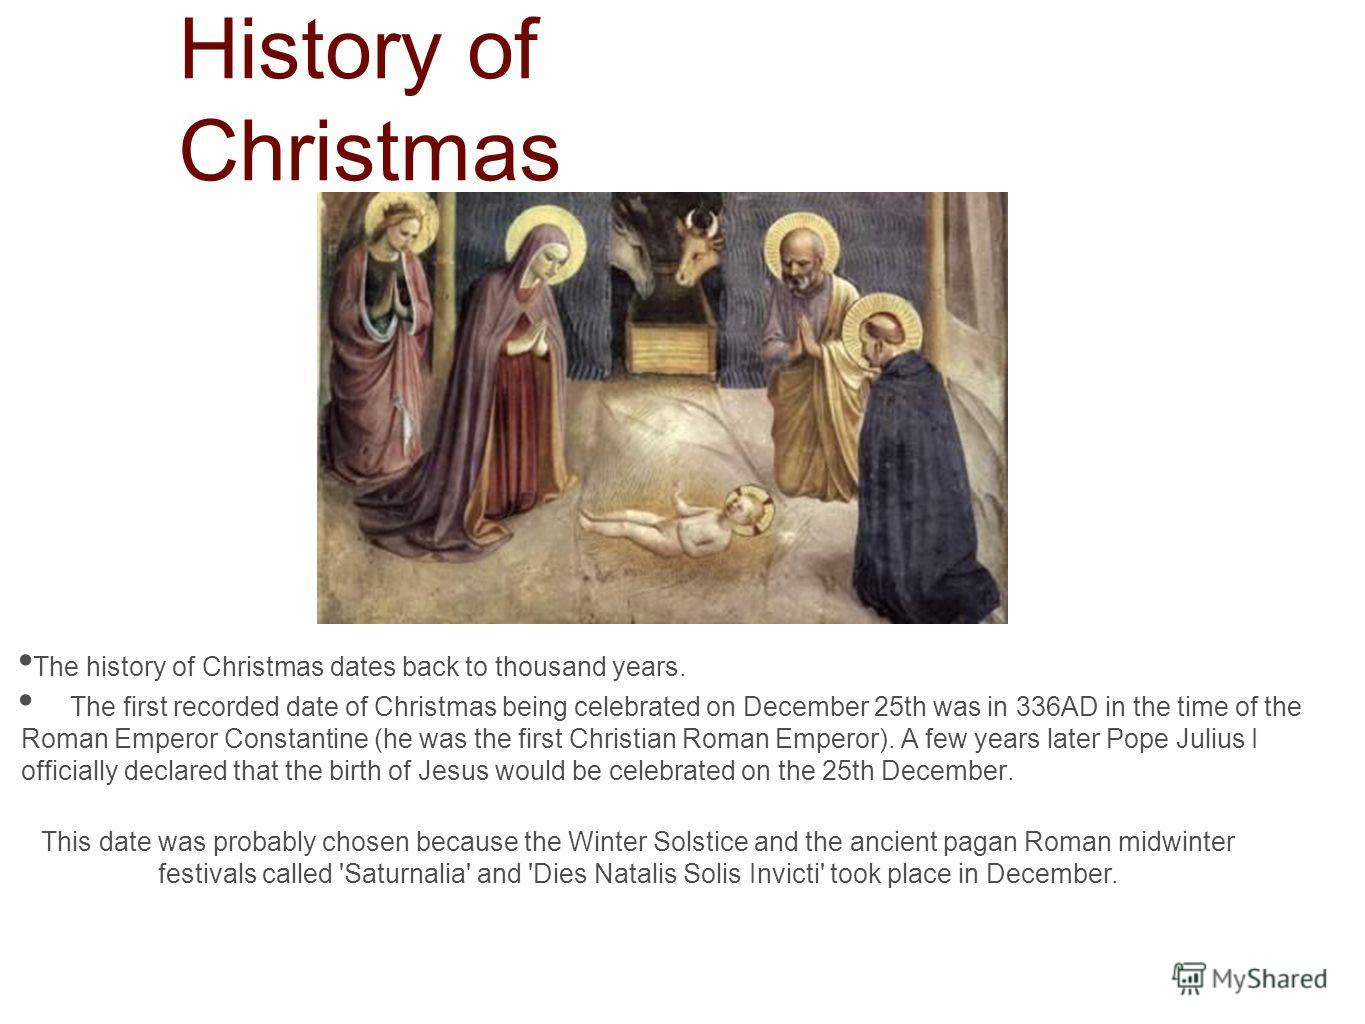 History of Christmas The history of Christmas dates back to thousand years. The first recorded date of Christmas being celebrated on December 25th was in 336AD in the time of the Roman Emperor Constantine (he was the first Christian Roman Emperor). A